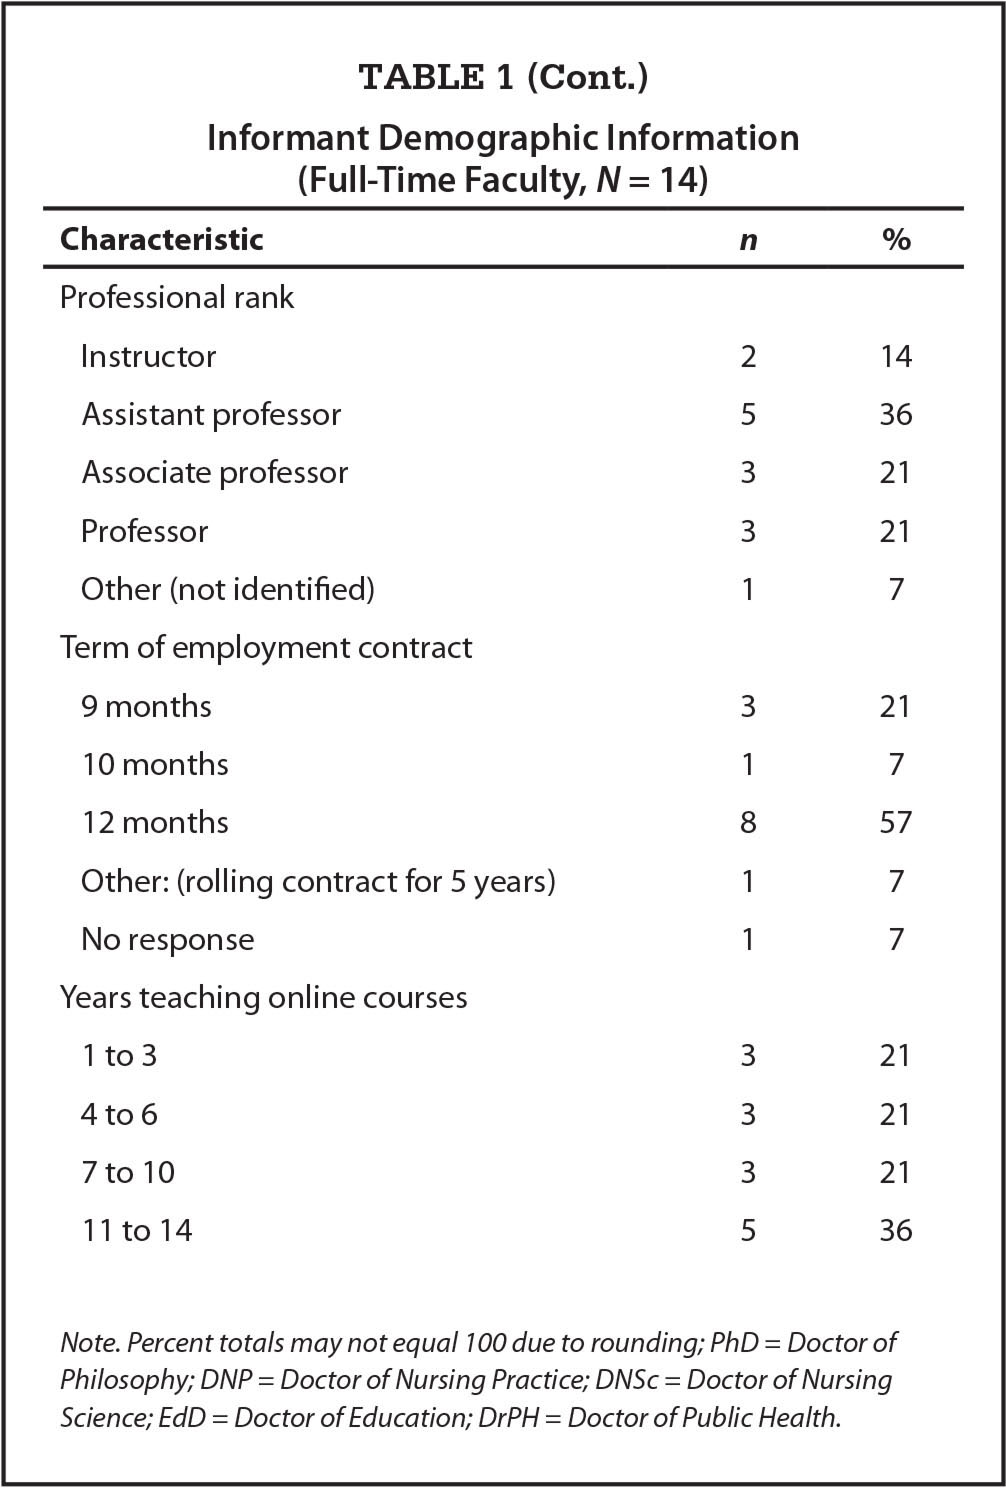 Informant Demographic Information (Full-Time Faculty, N = 14)